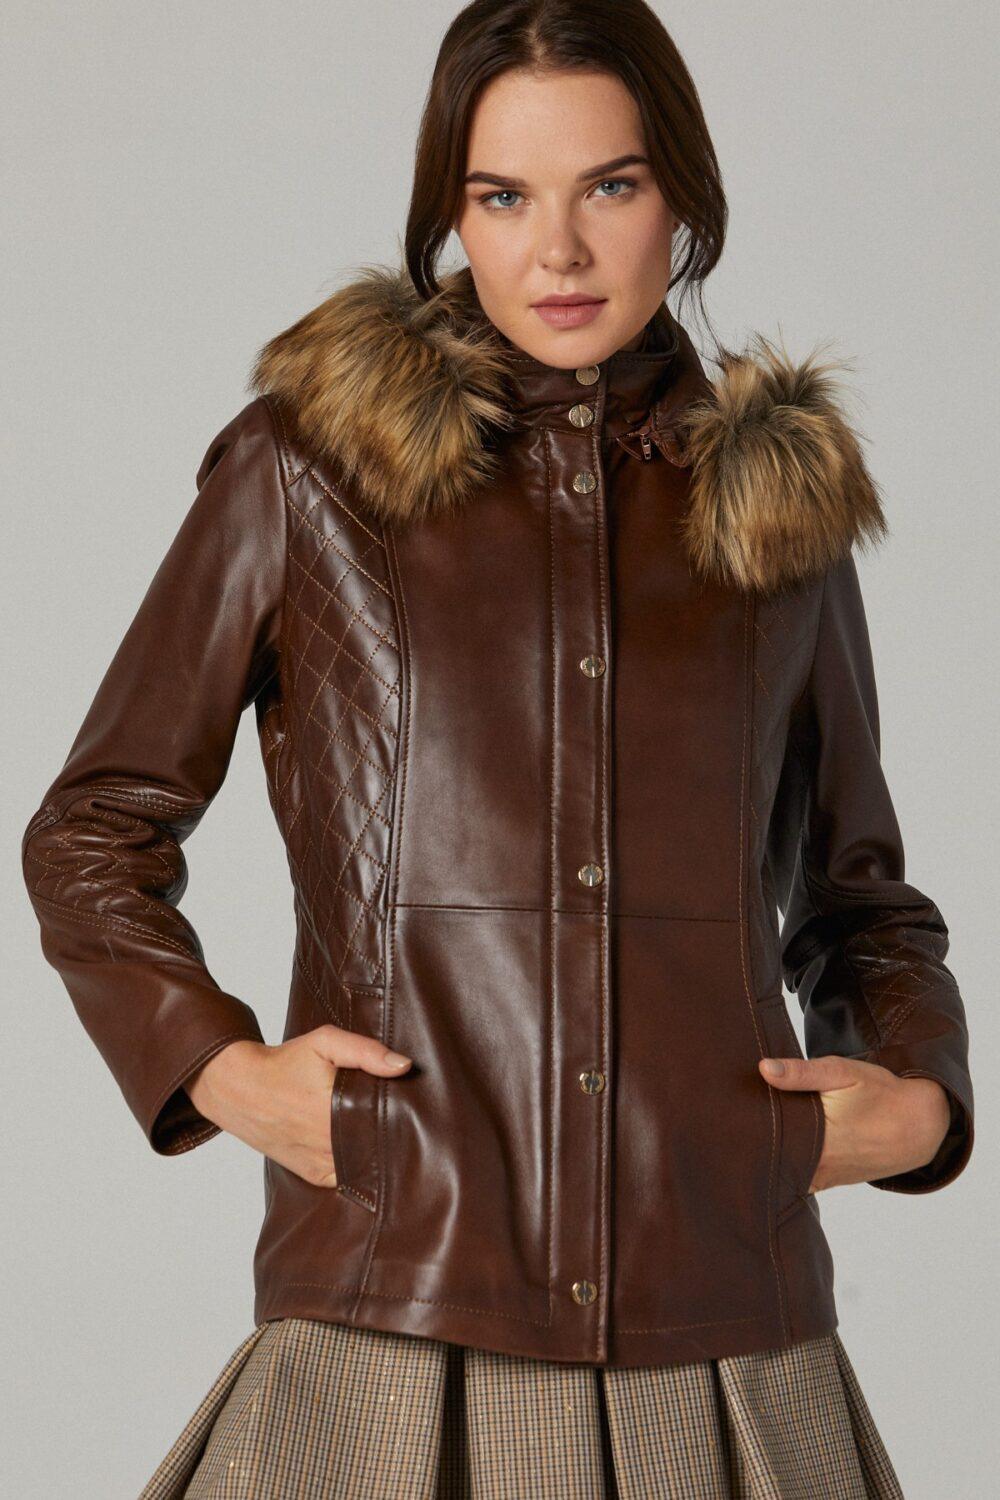 Spanx Leather Jackets